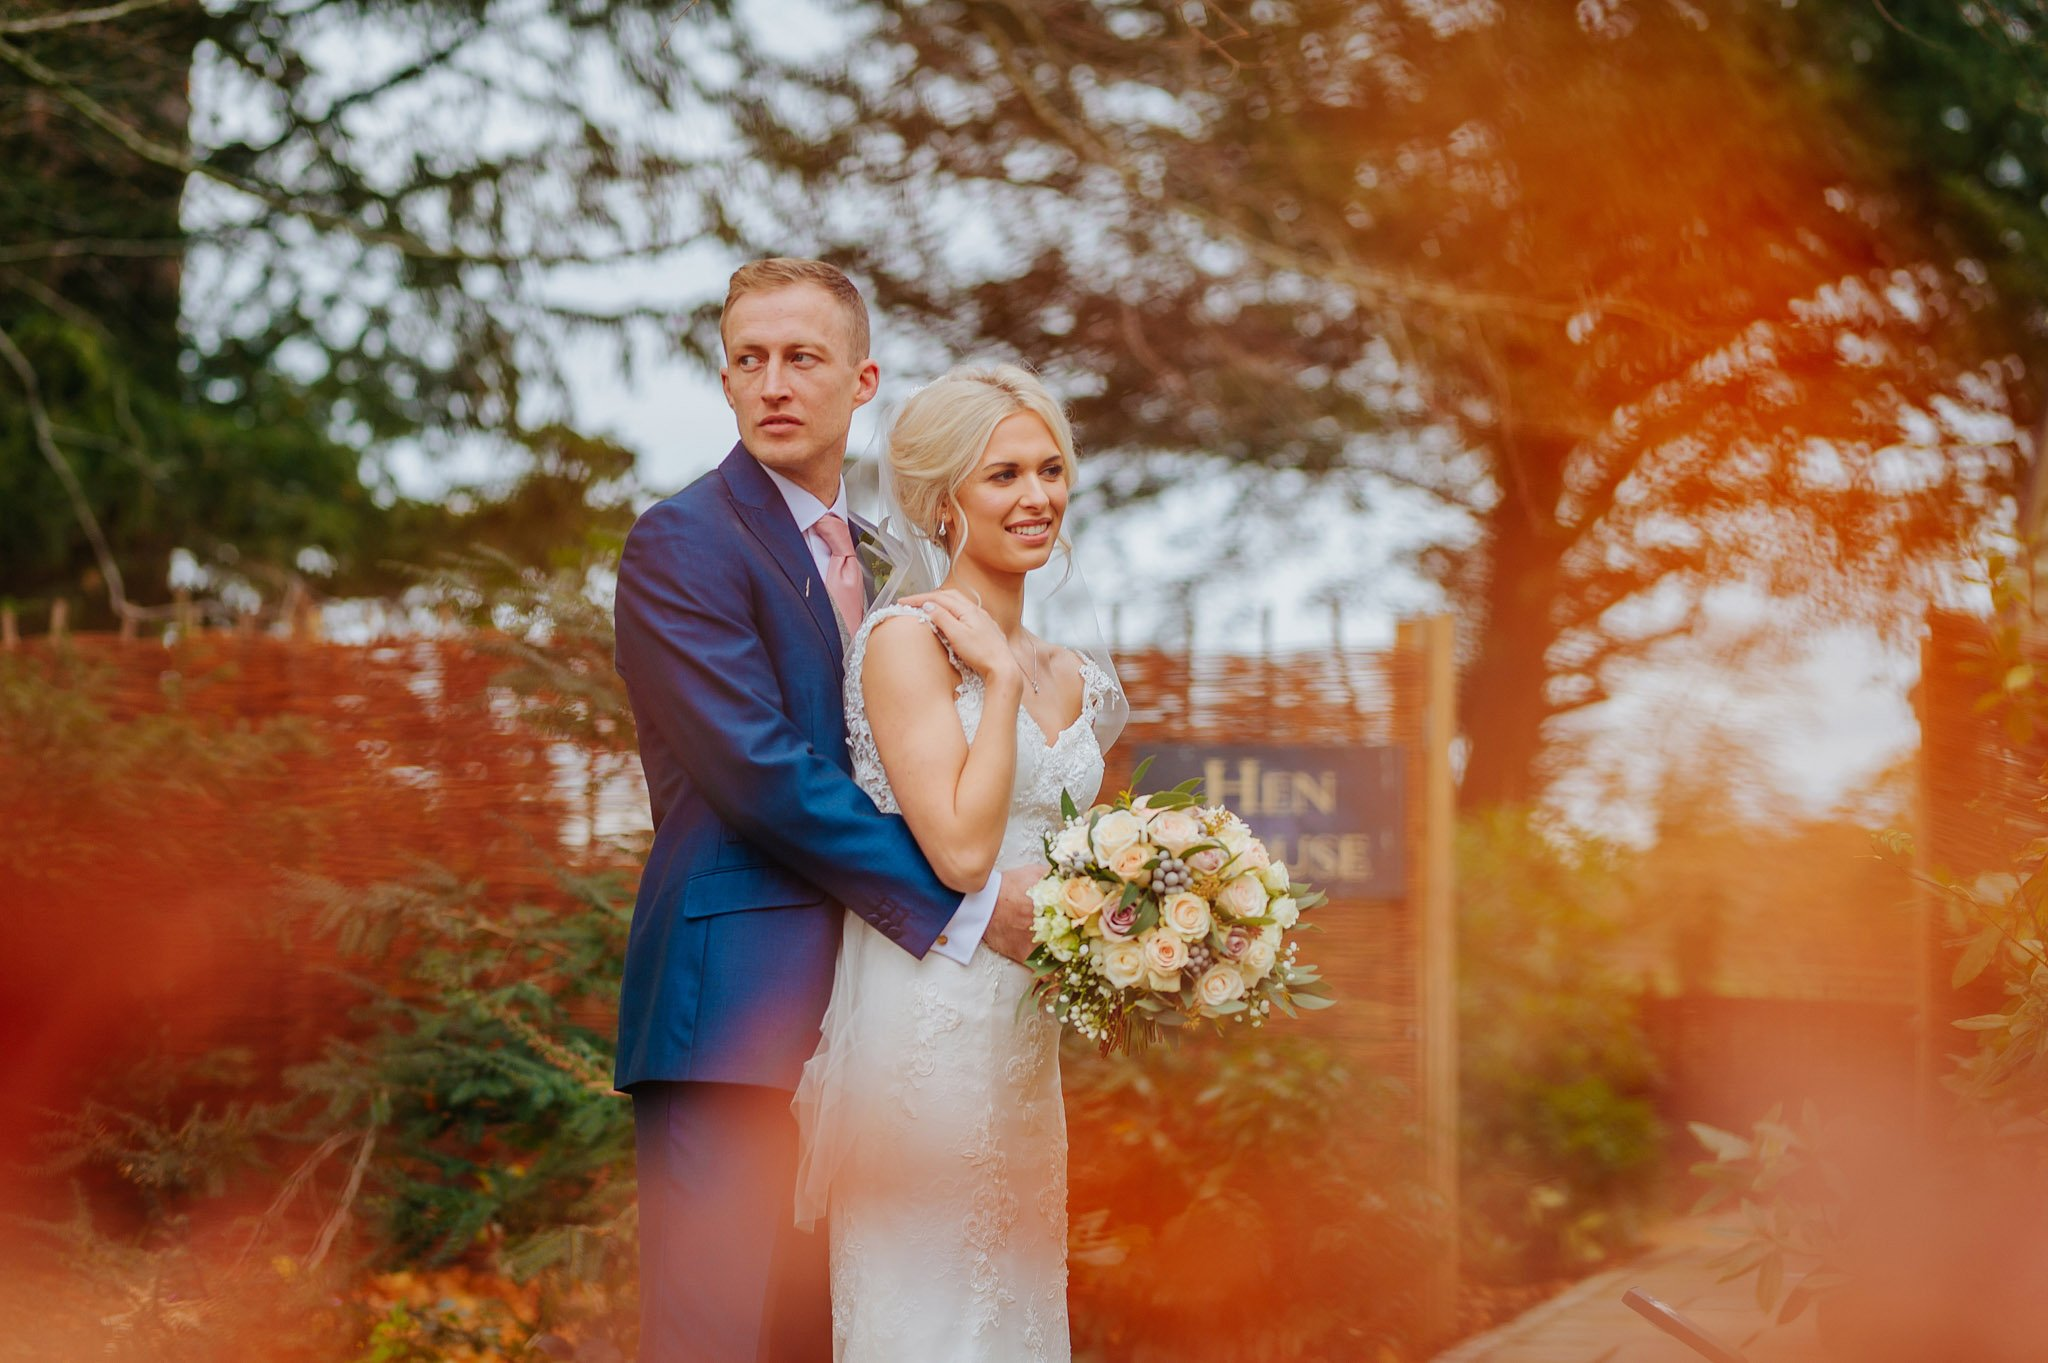 lemore manor wedding herefordshire 95 - Lemore Manor wedding, Herefordshire - West Midlands | Sadie + Ken